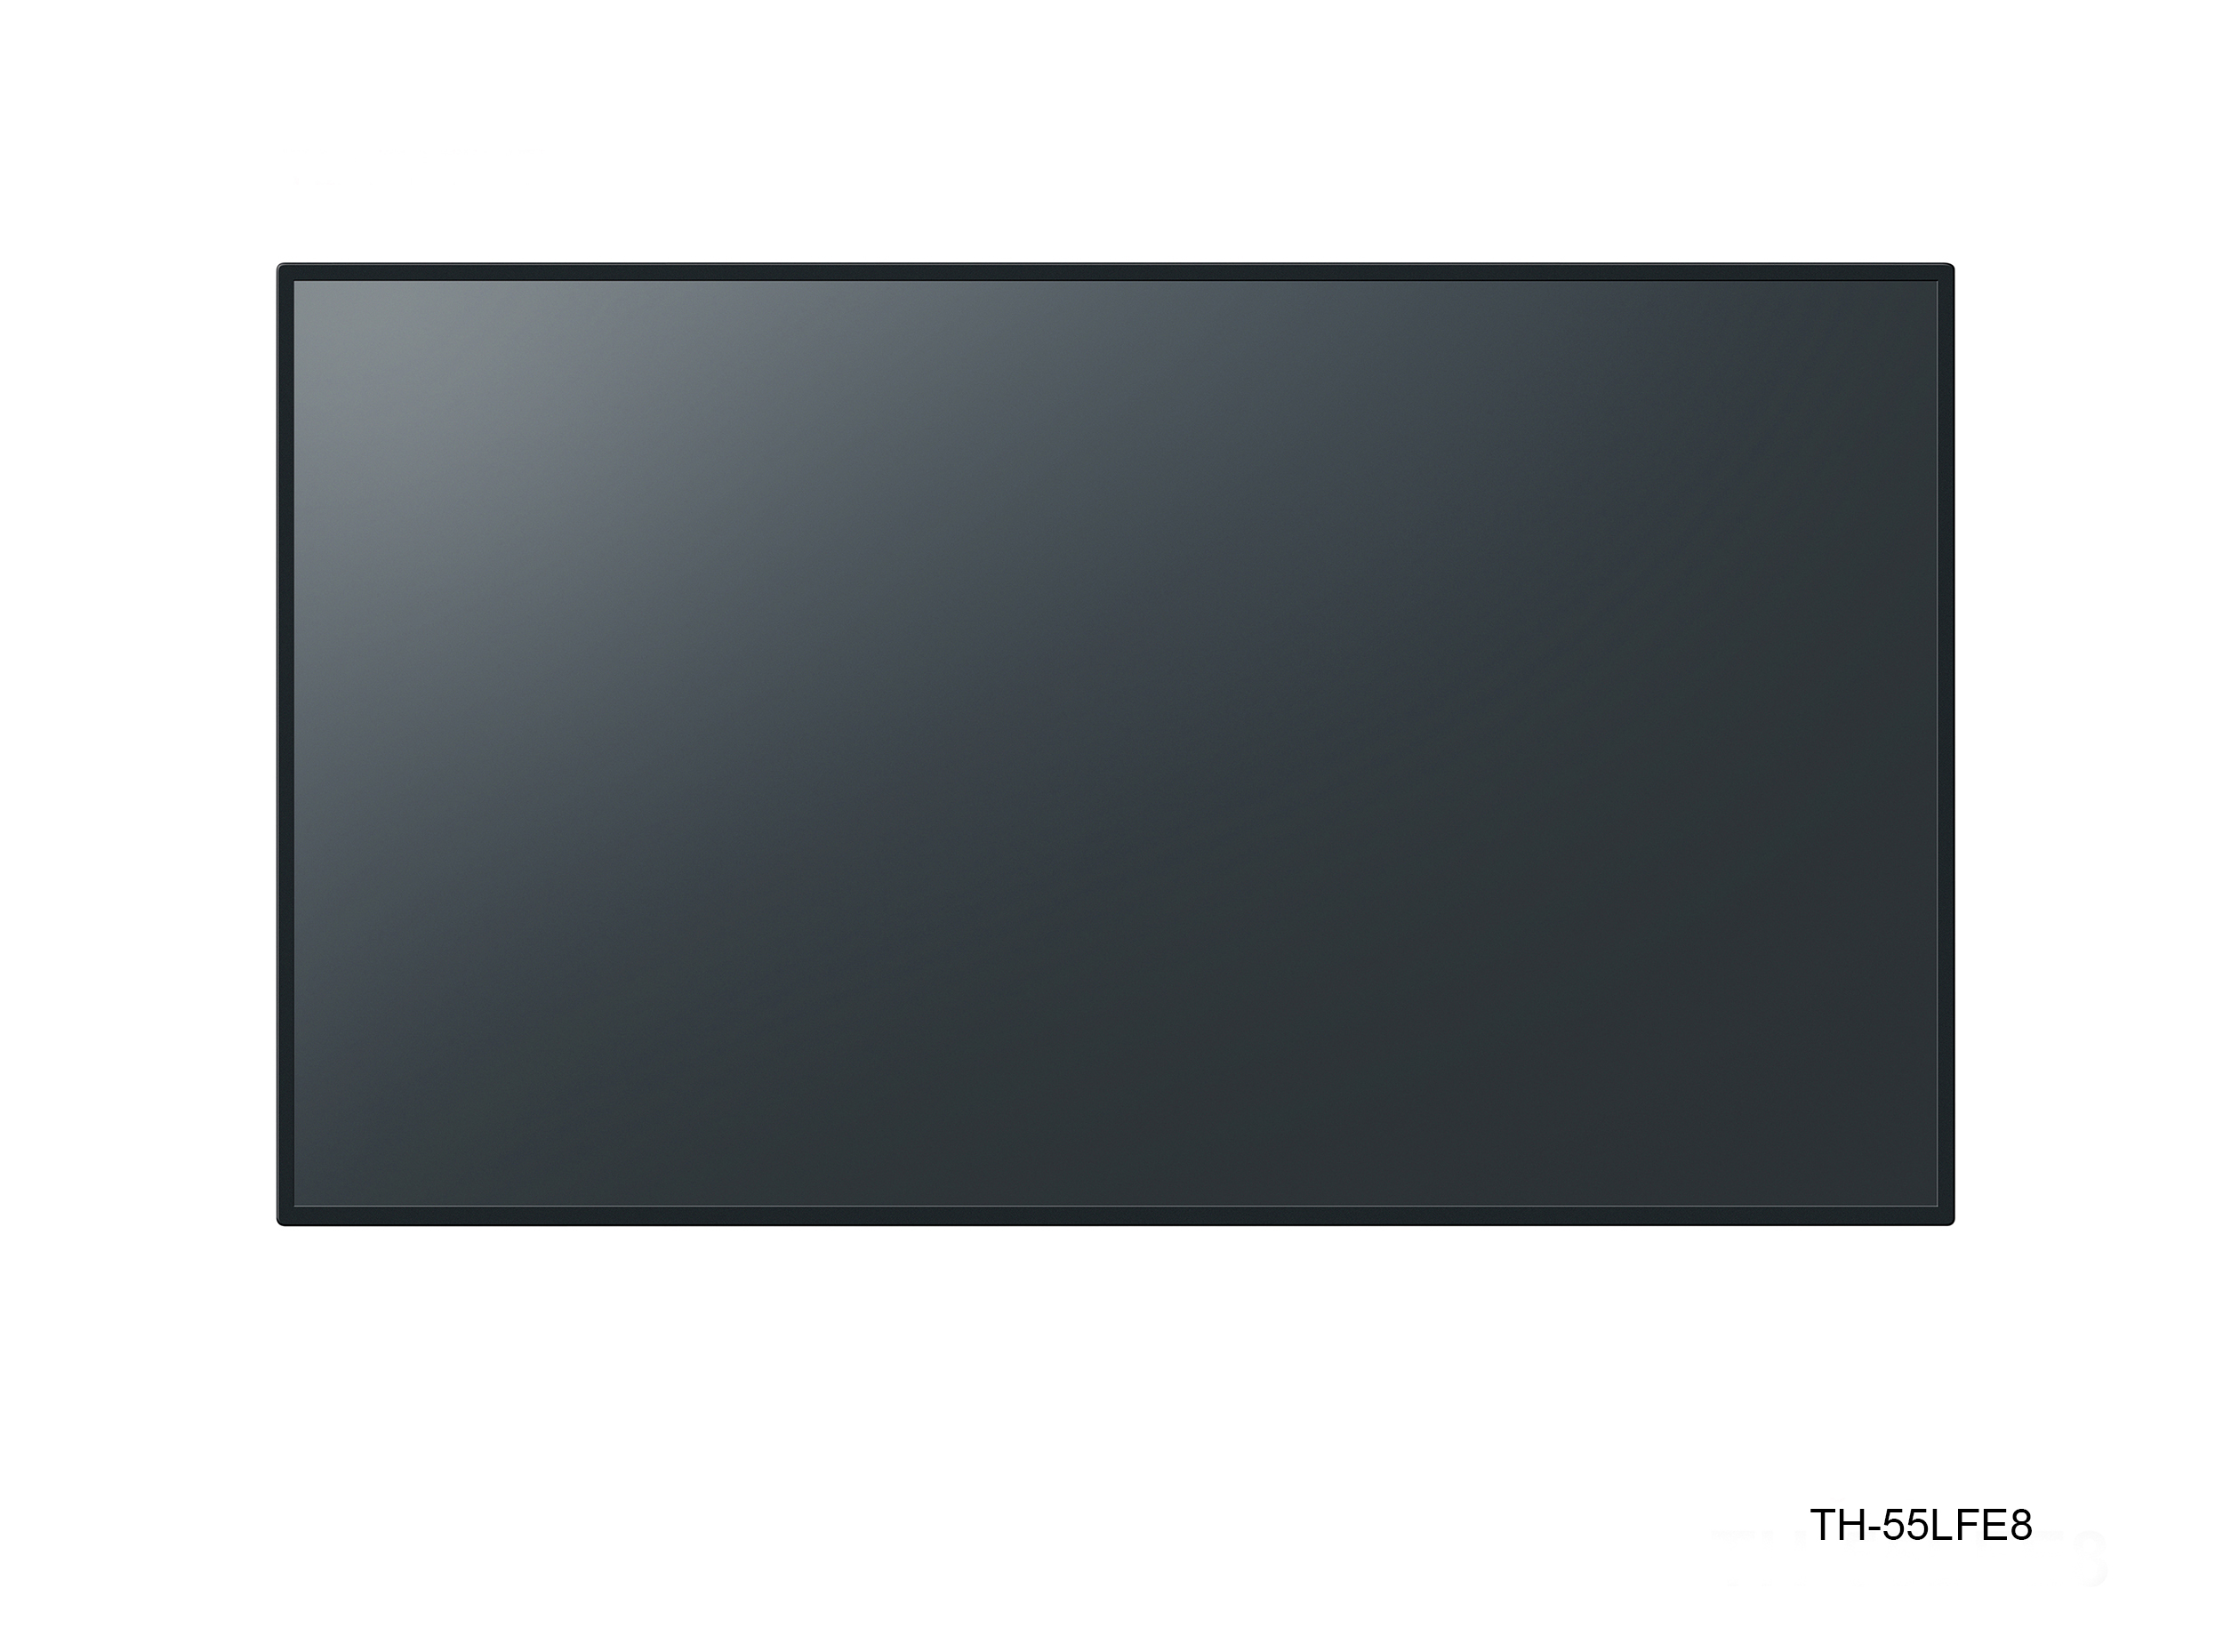 PANASONIC TH-55LFE8E LED PROFESSIONAL DISPLAY